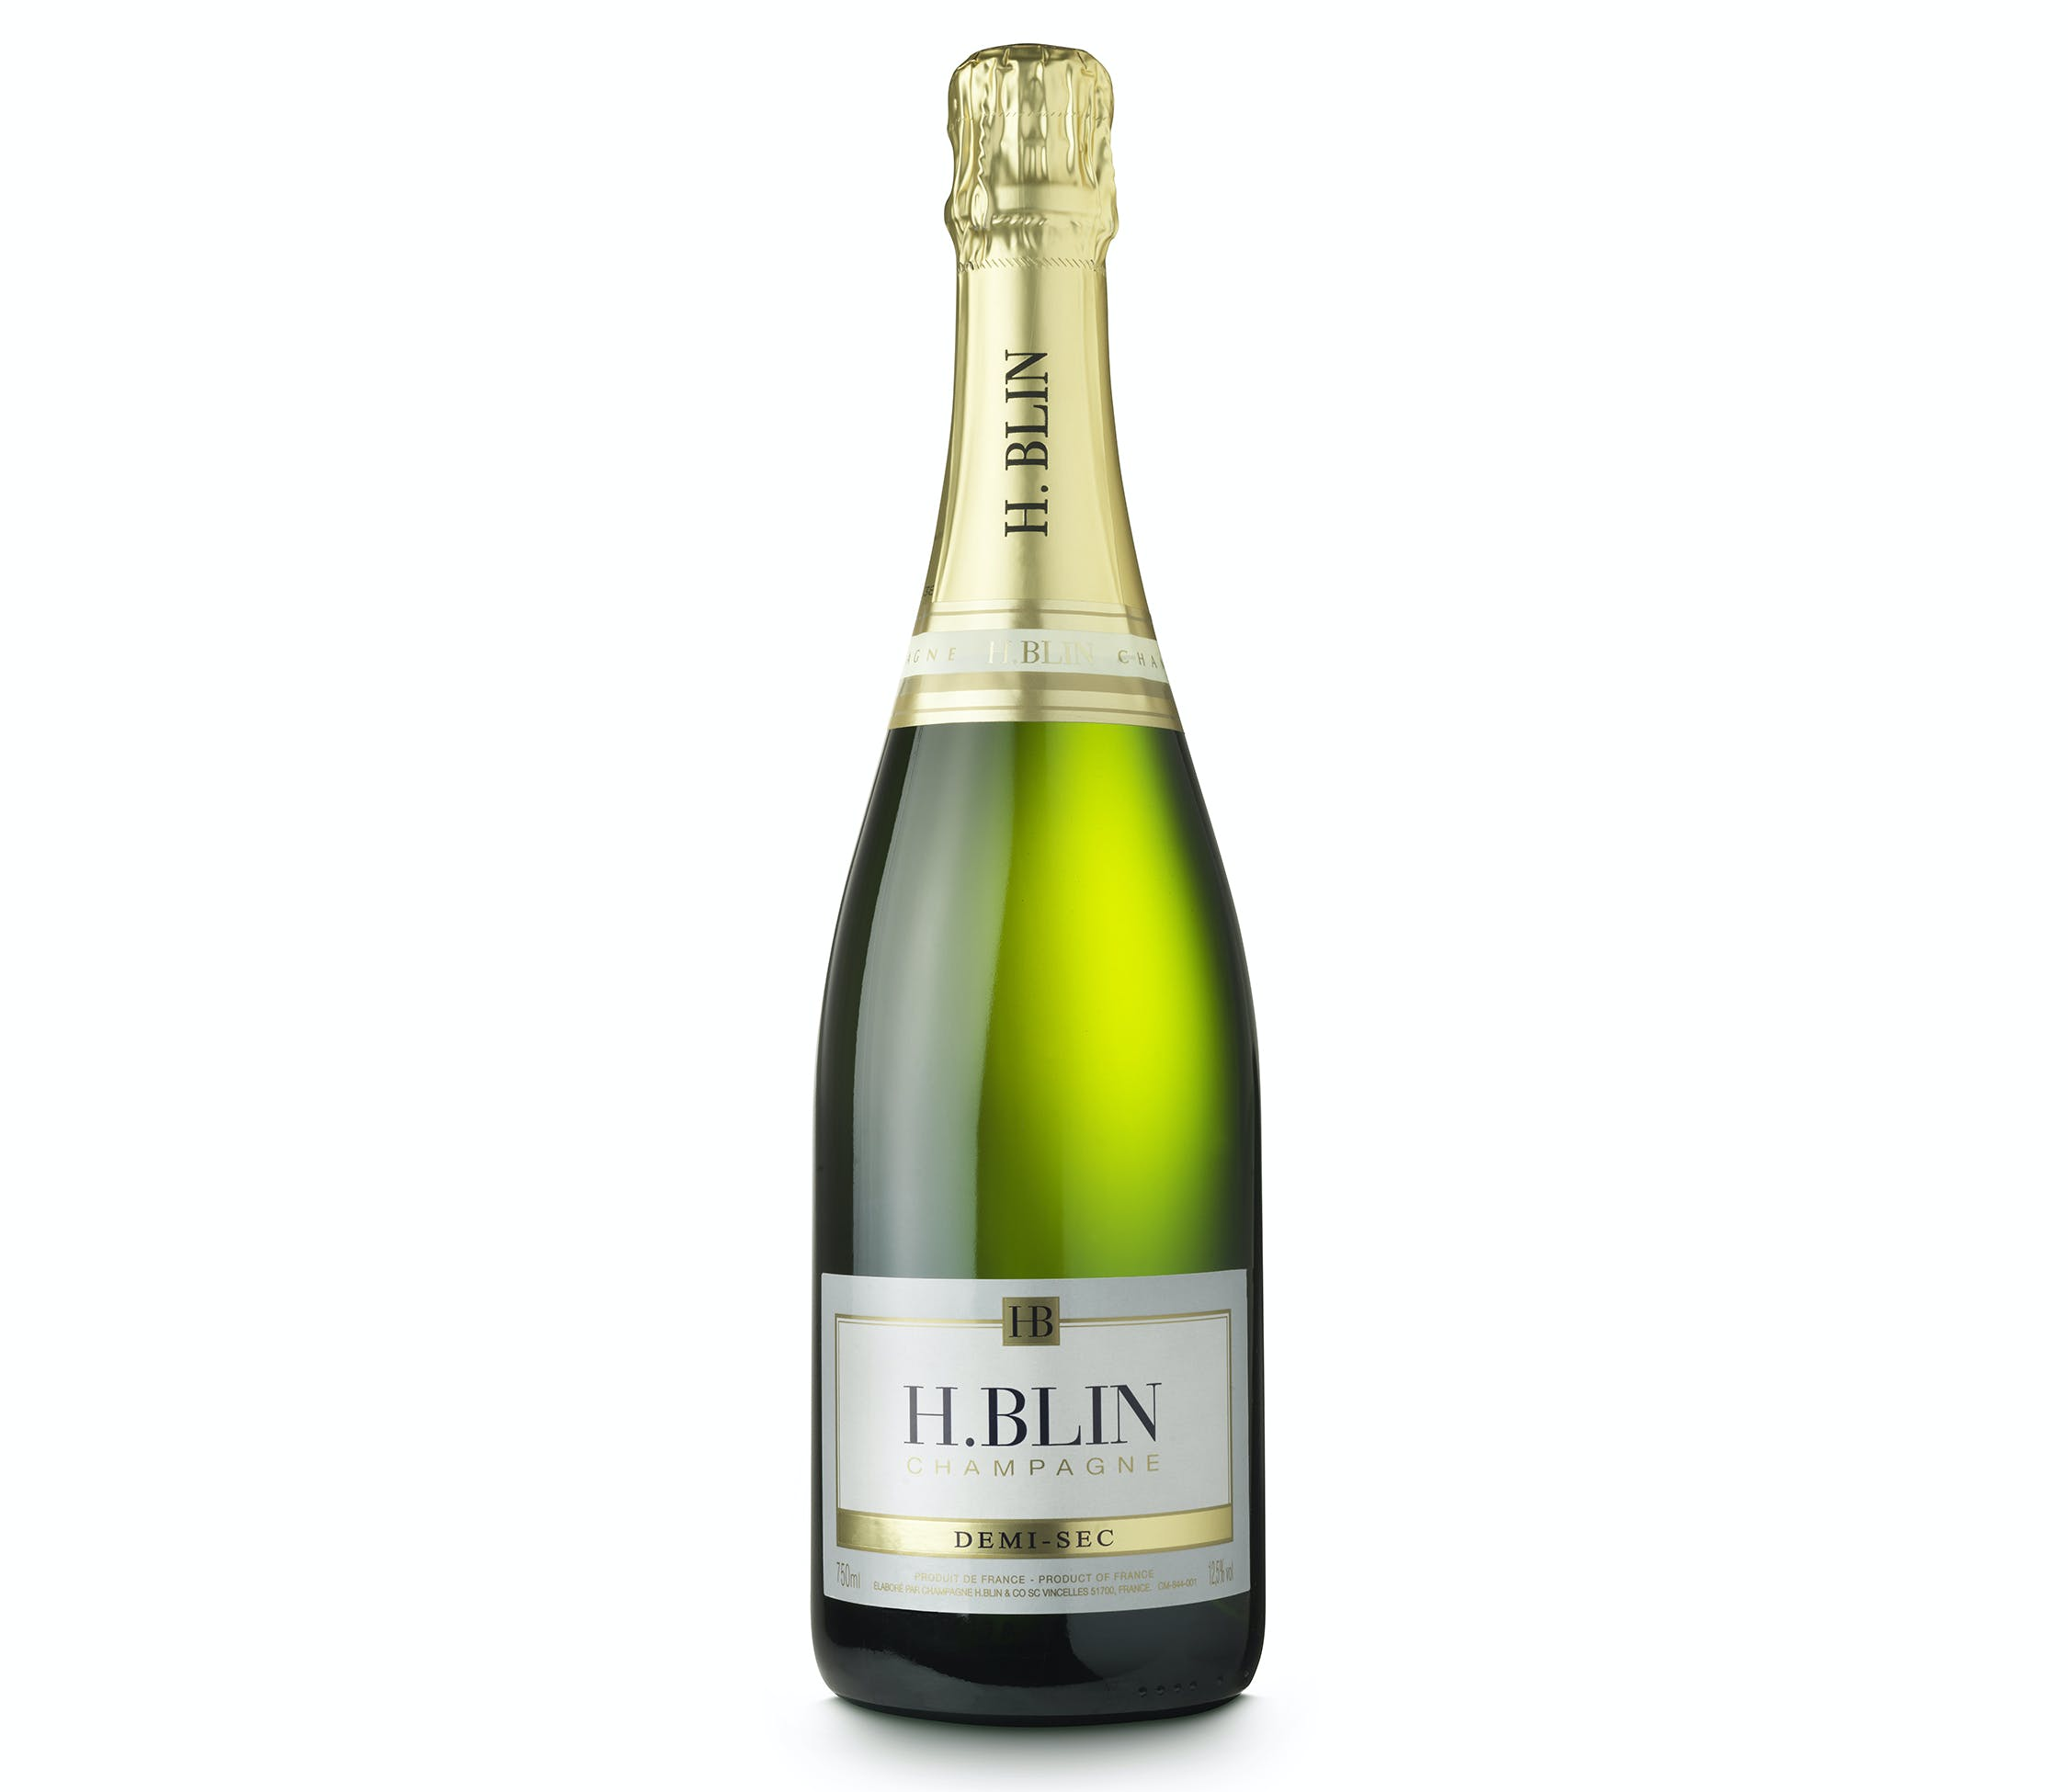 Best H Blin, Champagne Demi   Sec Stockists